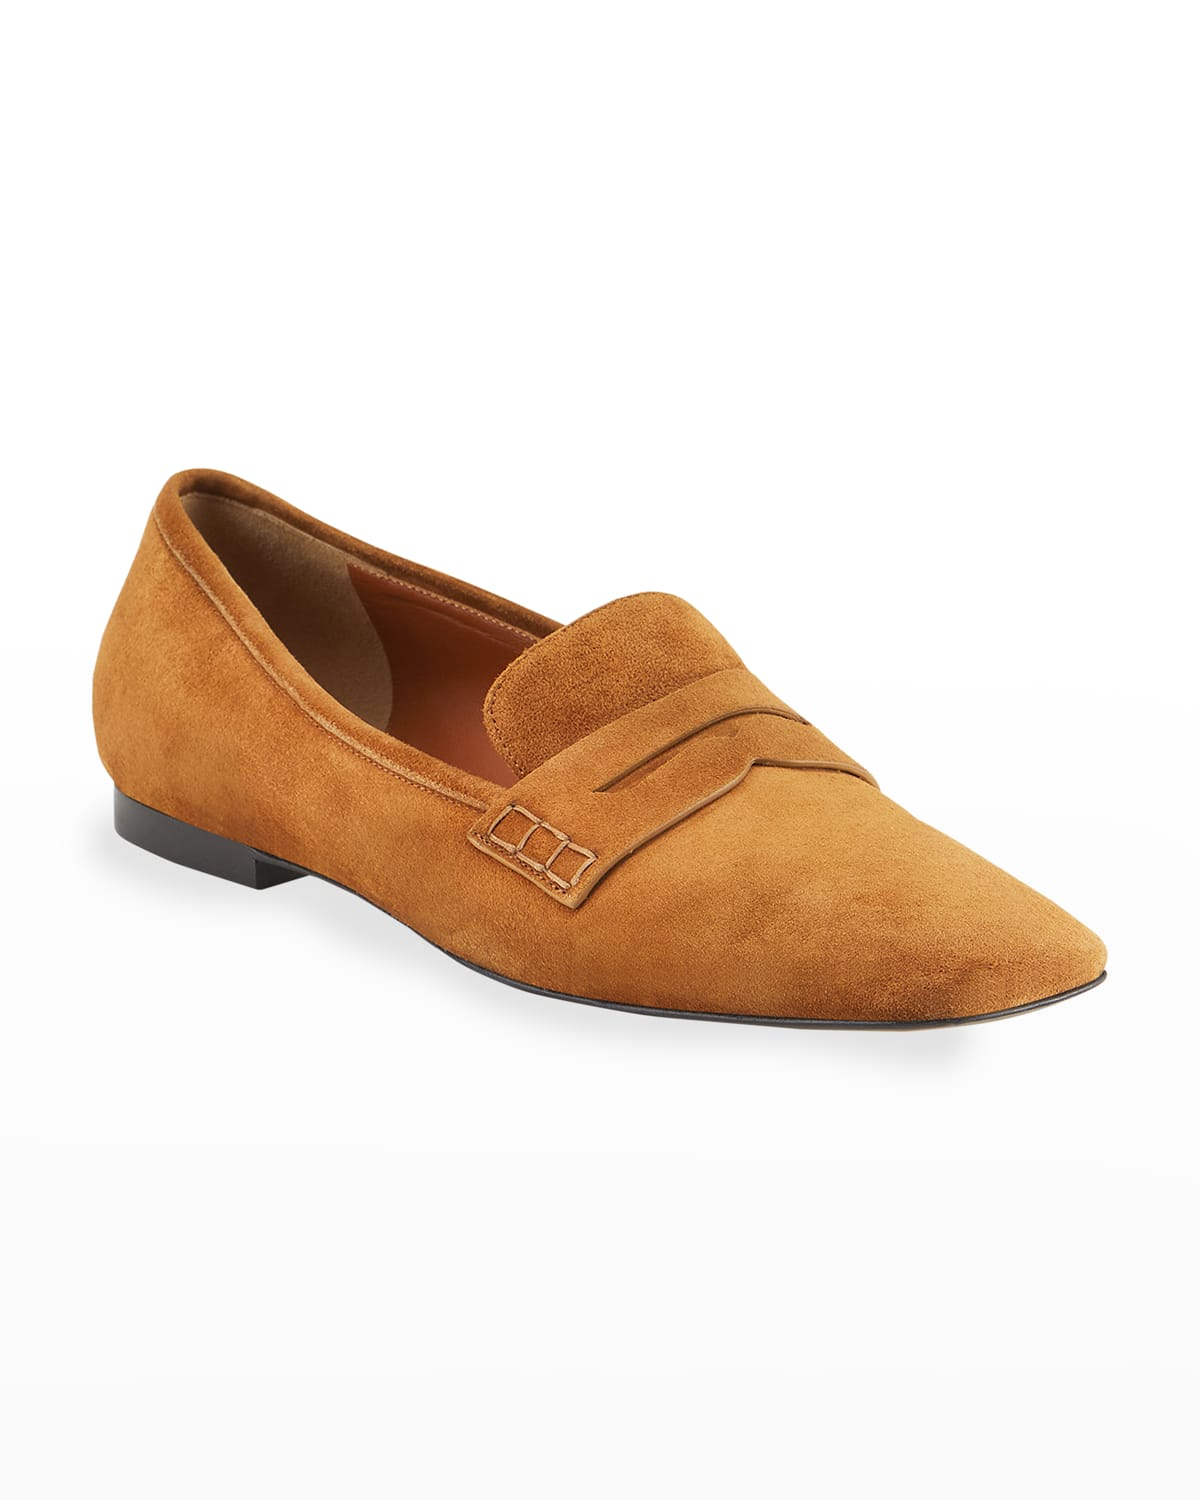 Carlisle Suede Penny Loafer by Khaite, available on neimanmarcus.com for $740 Karlie Kloss Shoes Exact Product